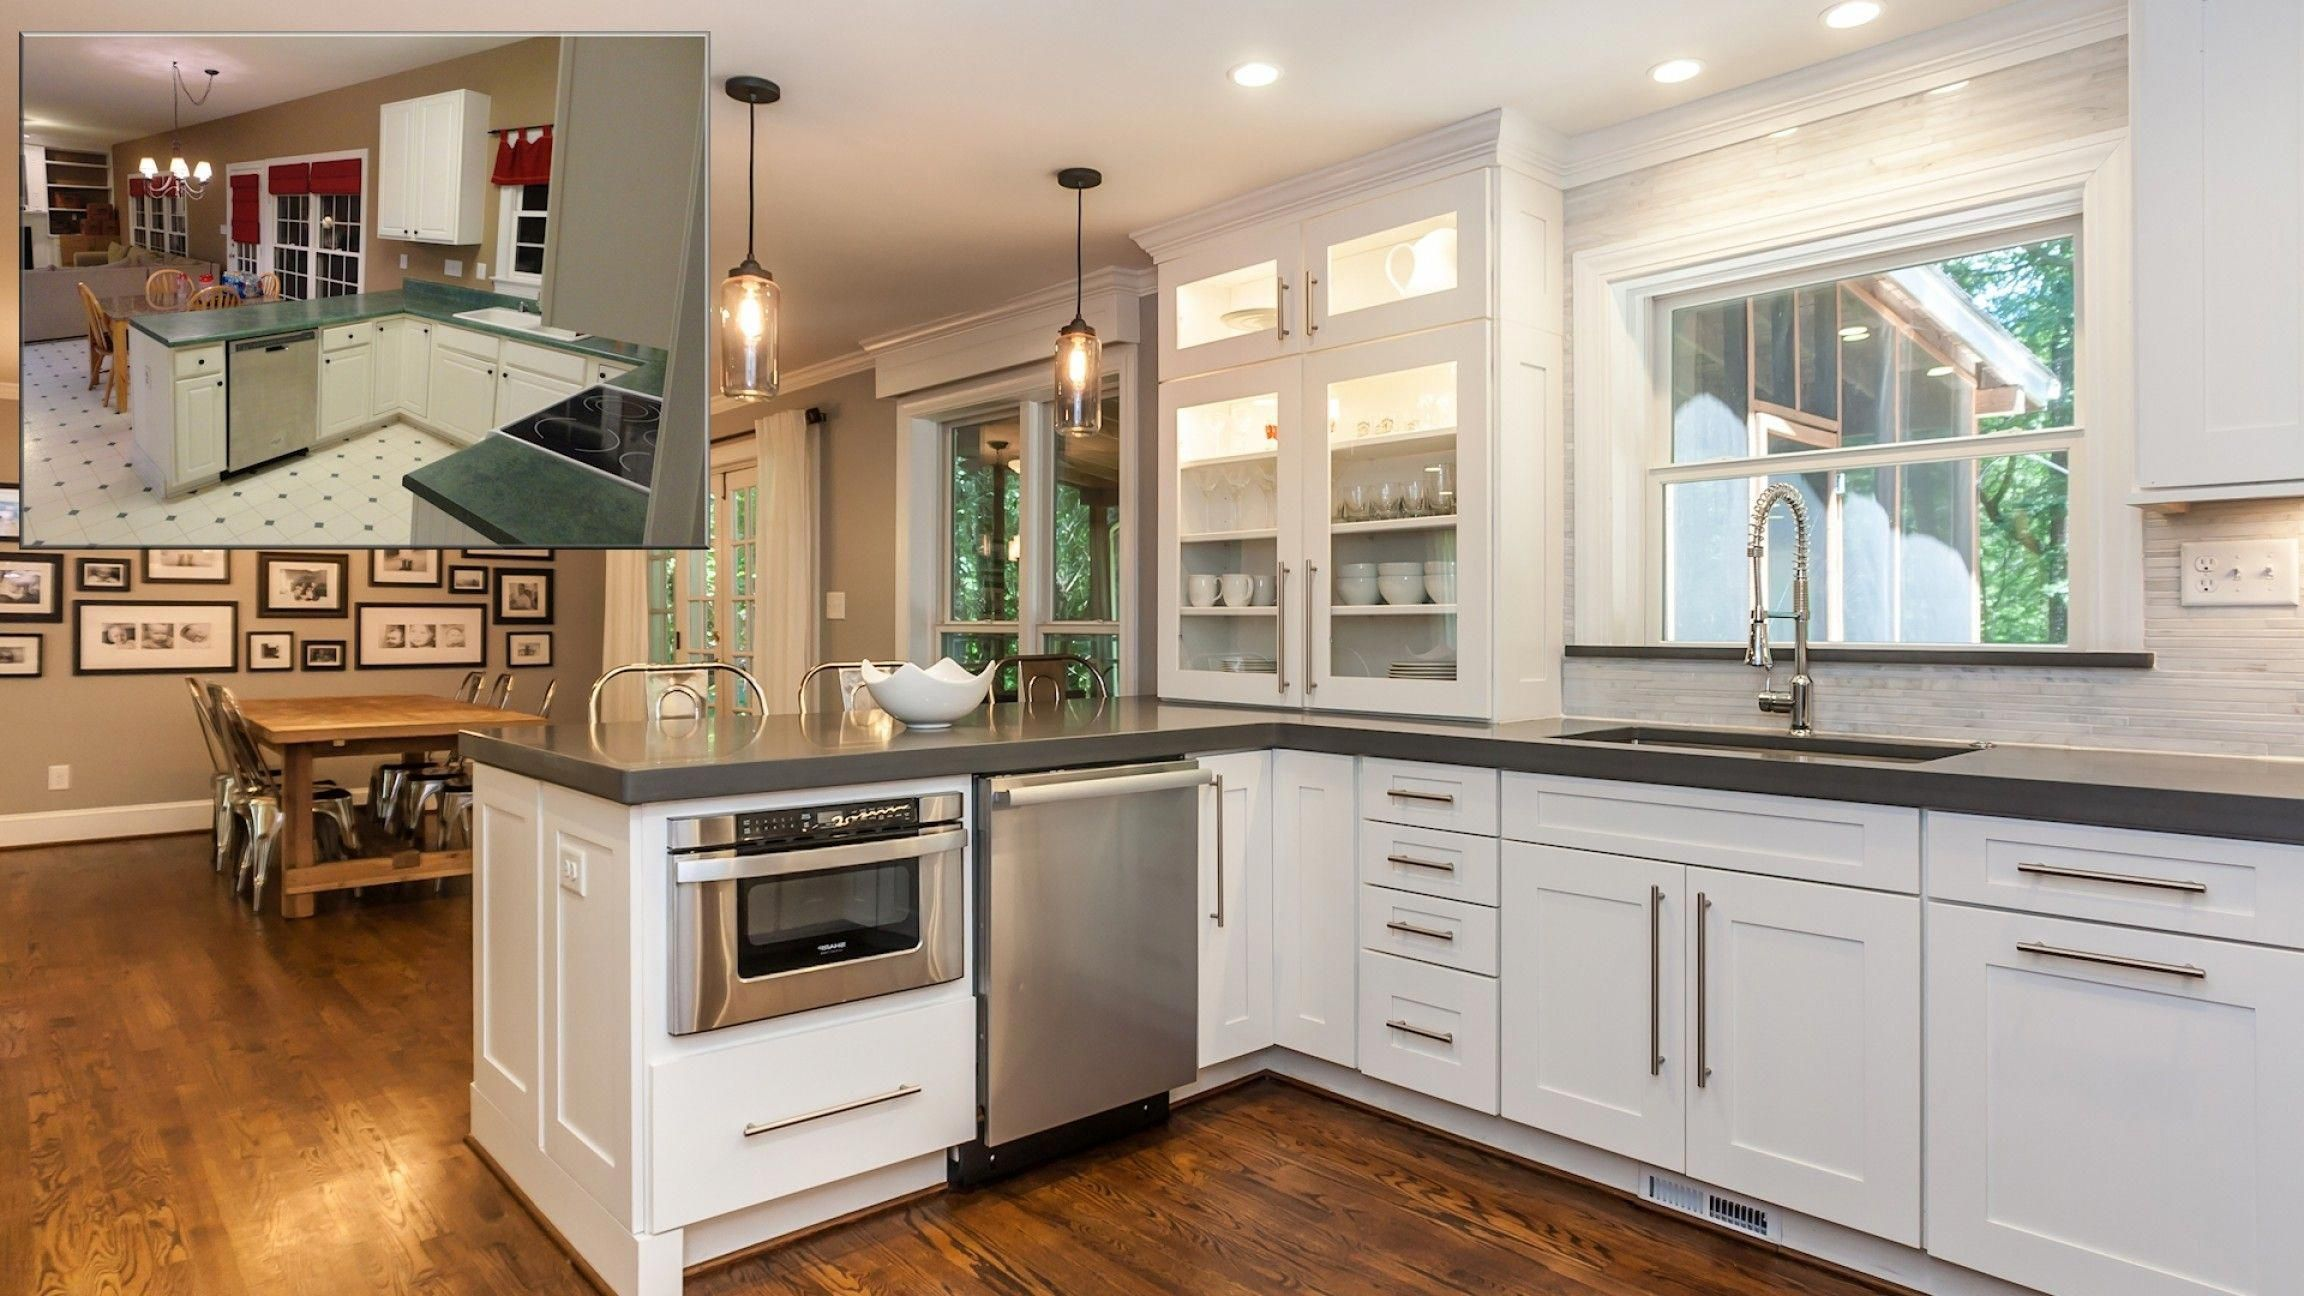 before and after kitchen remodels u shaped kitchen remodel ideas before and after cab on kitchen ideas u shaped id=63787